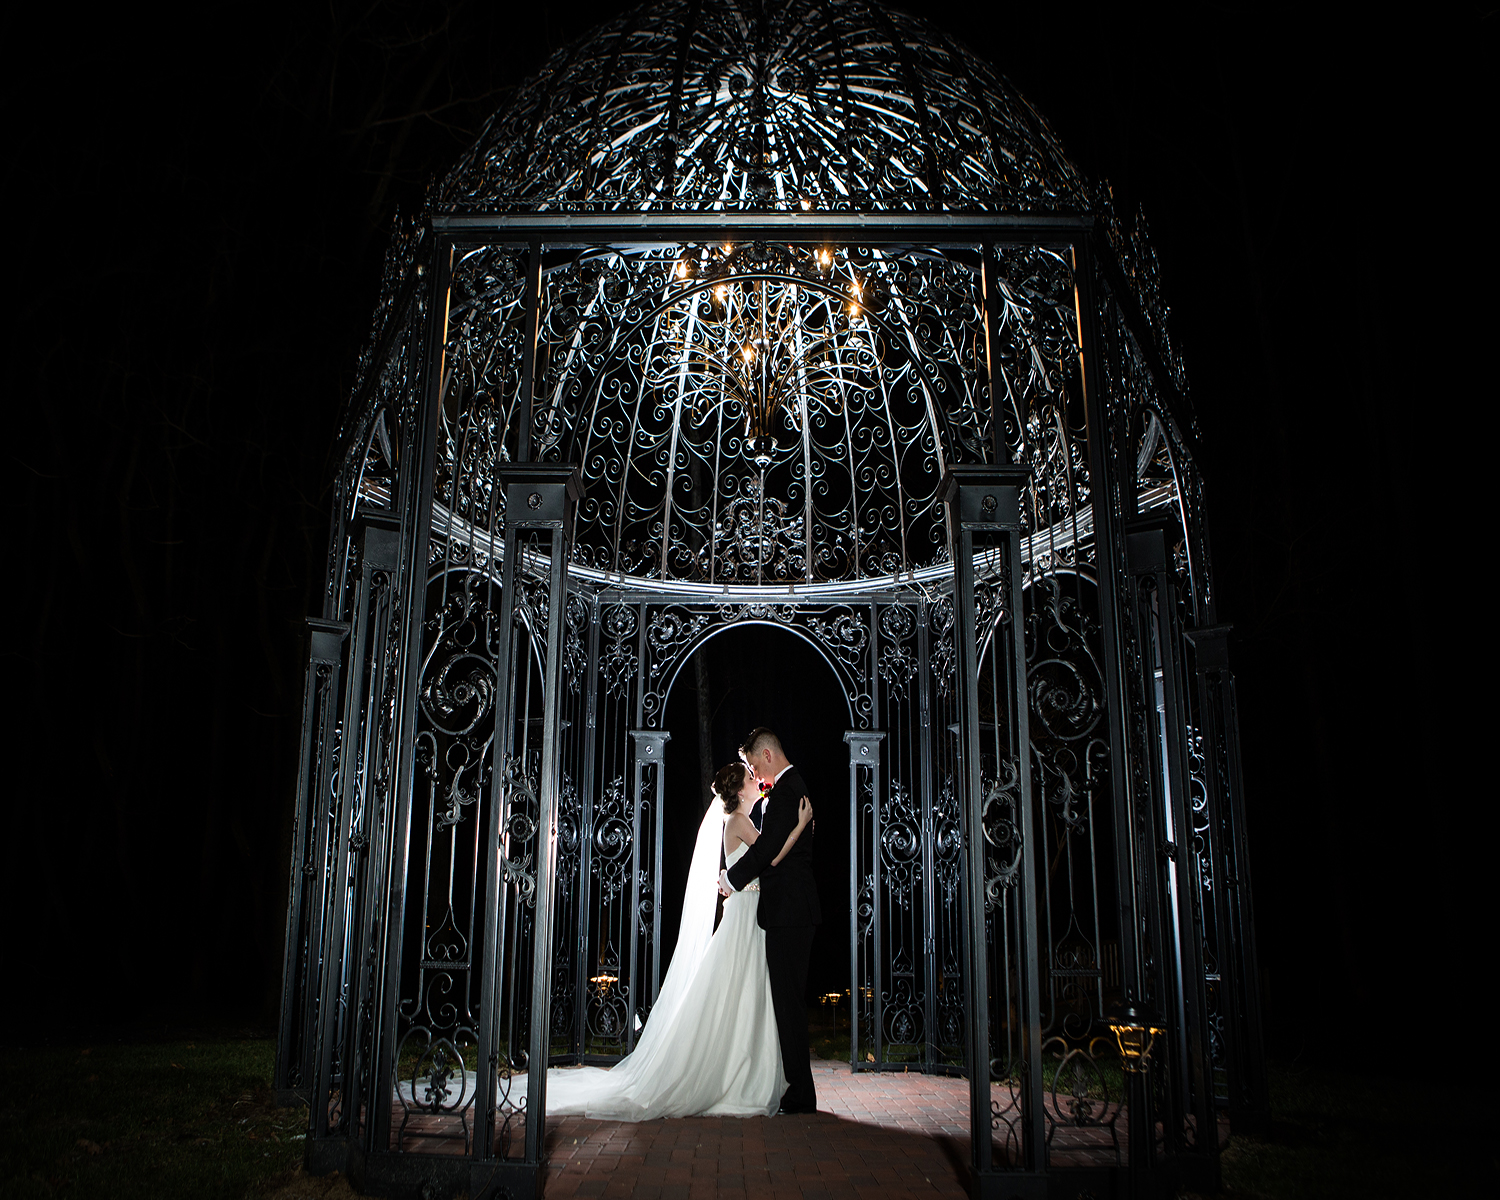 Gazebo at Black Iris Wedding Venue